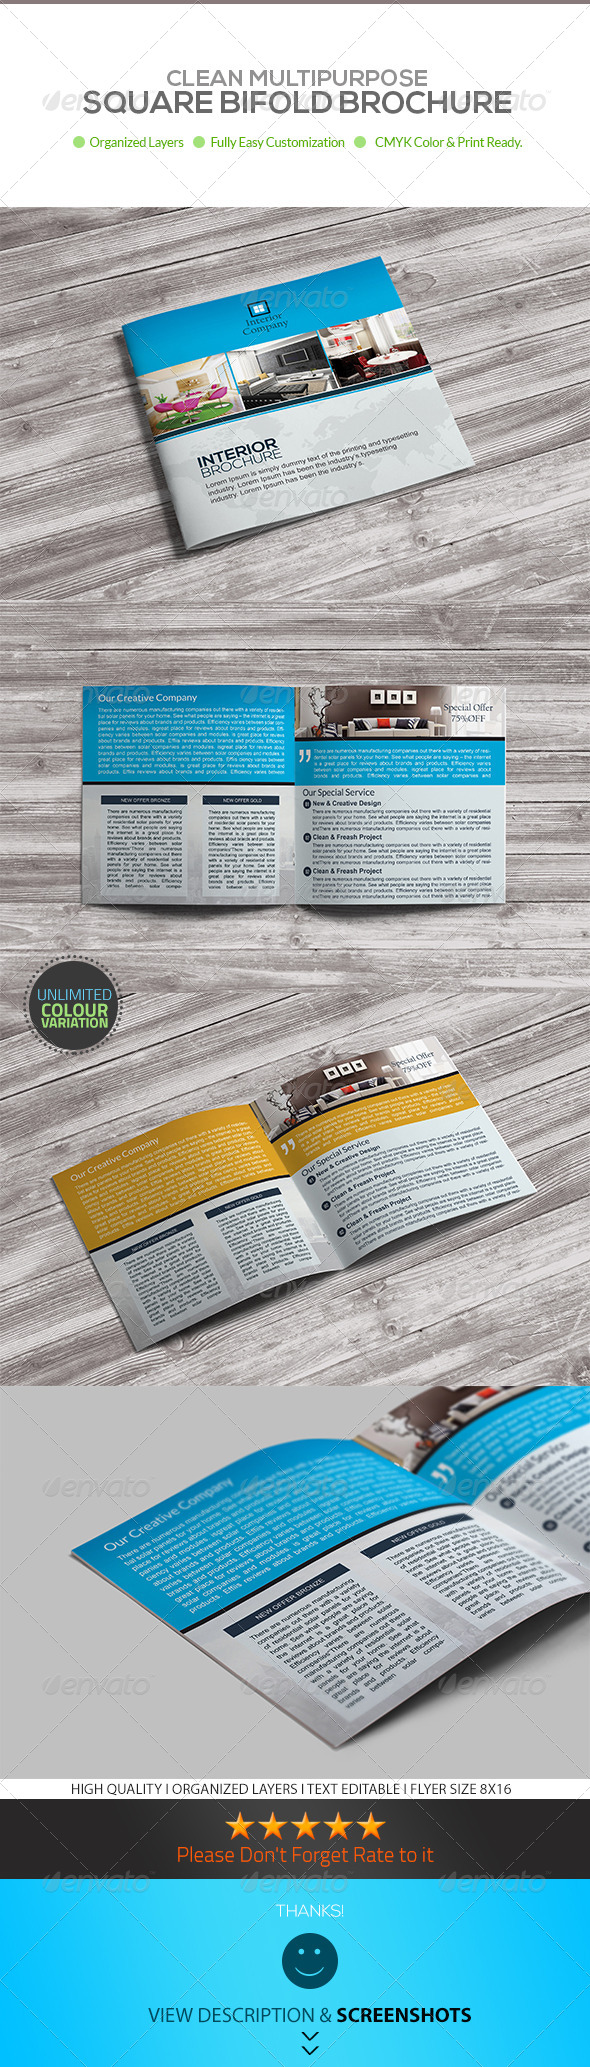 GraphicRiver Square Bifold Brochure Interior Design Template 8104533